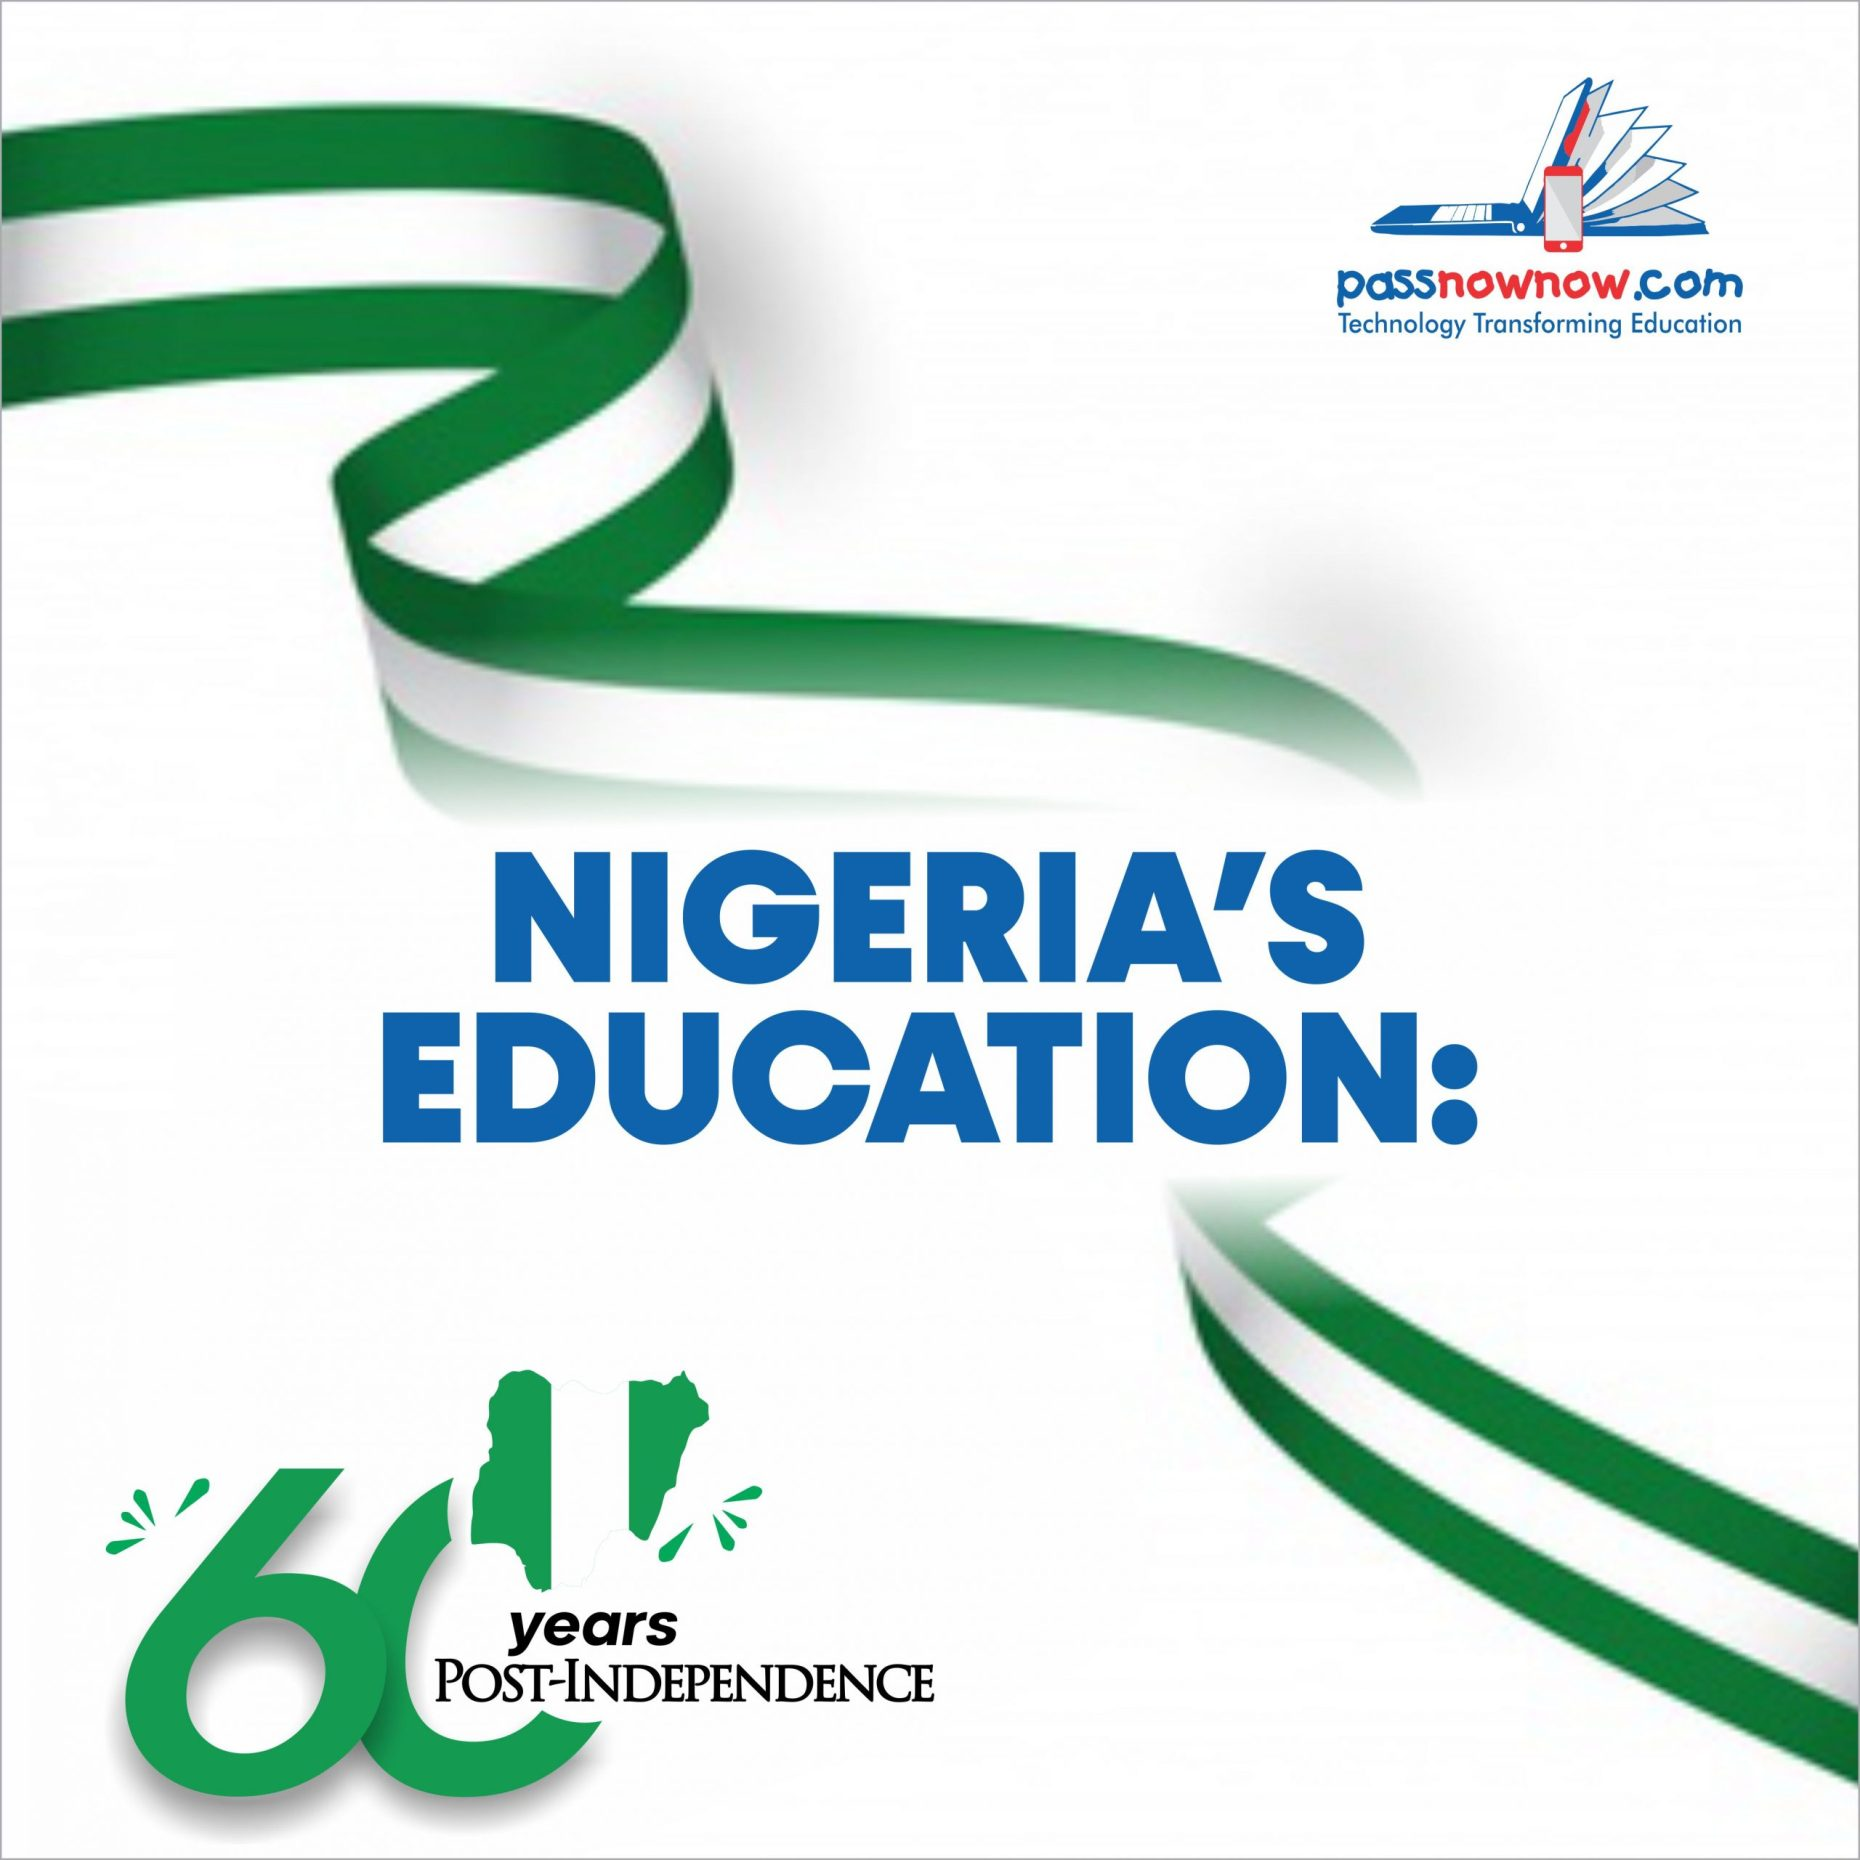 Nigeria's Education: 60 years Post Independece